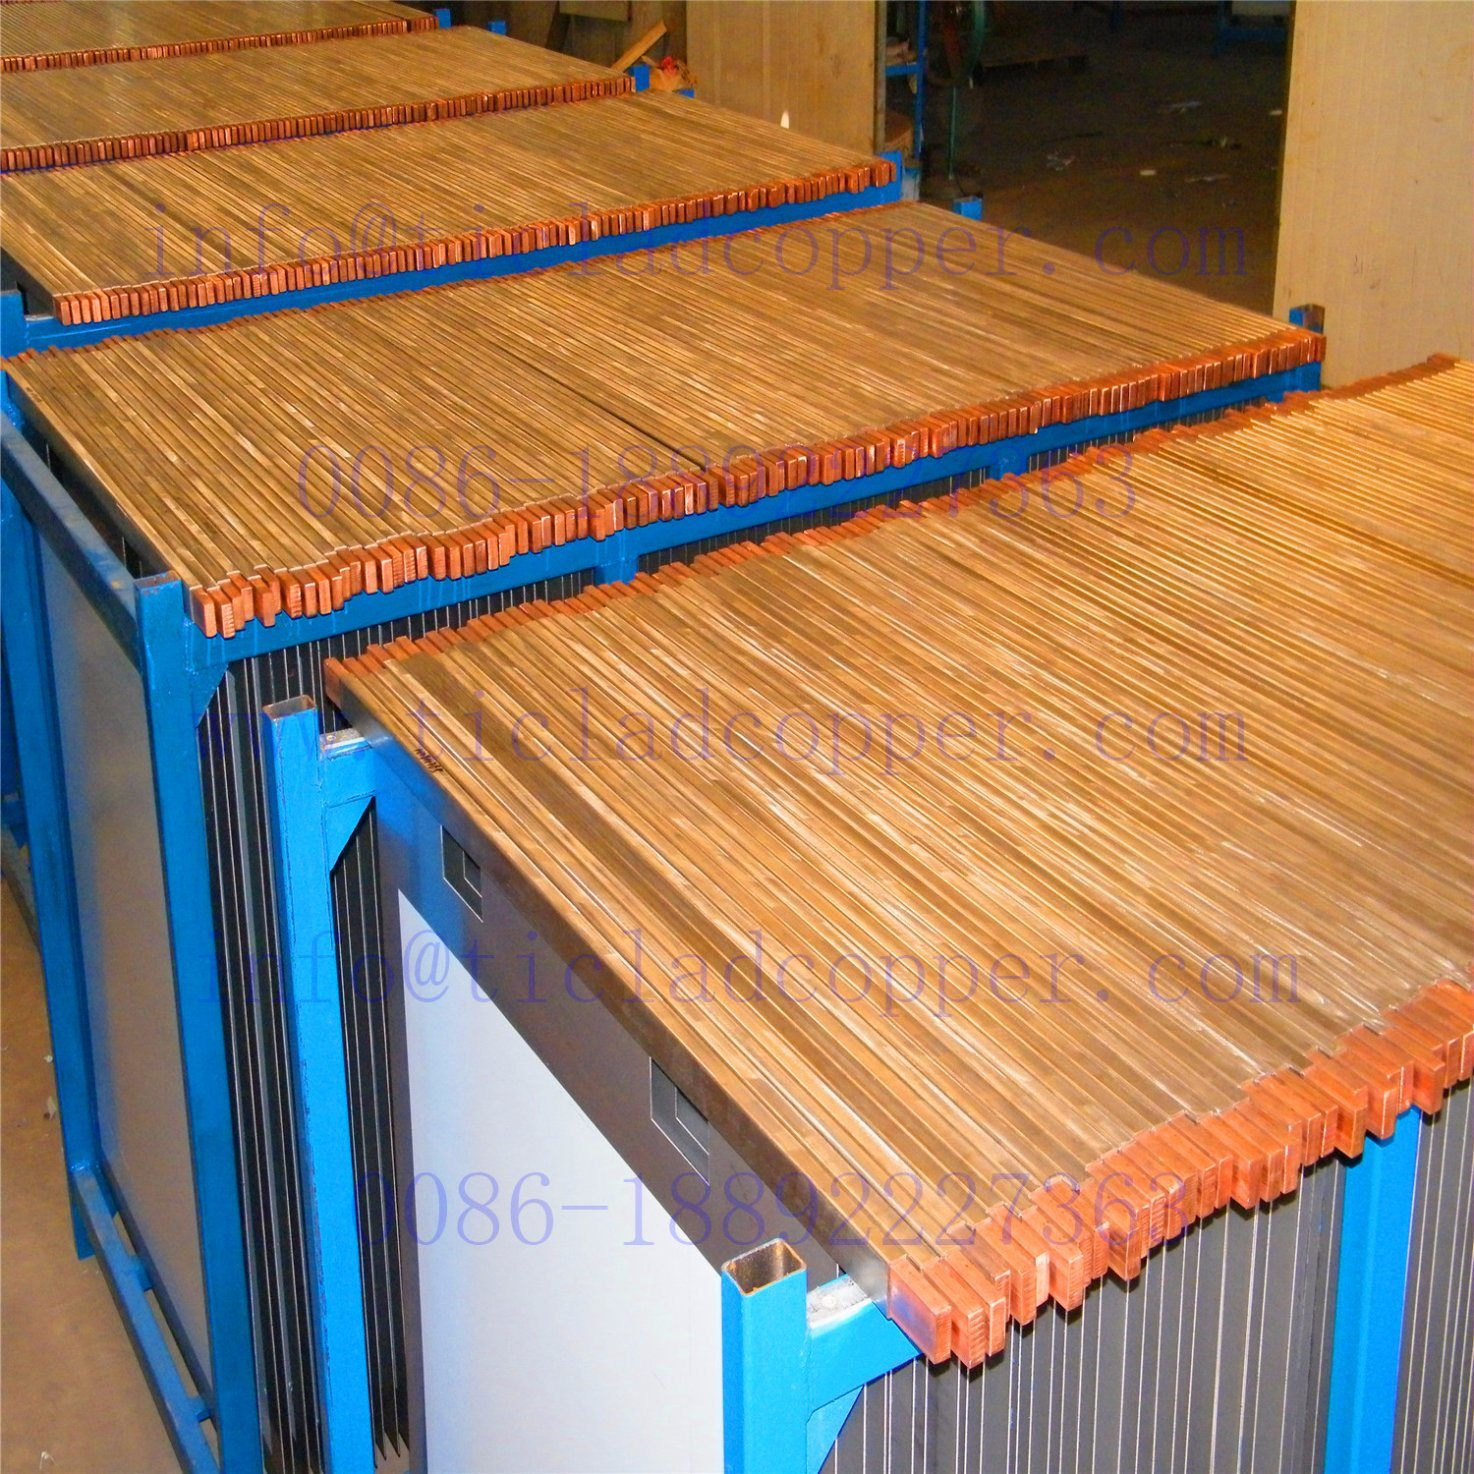 Gr1 Titanium Cathode Plate for Copper Foil Production / Electrowinning